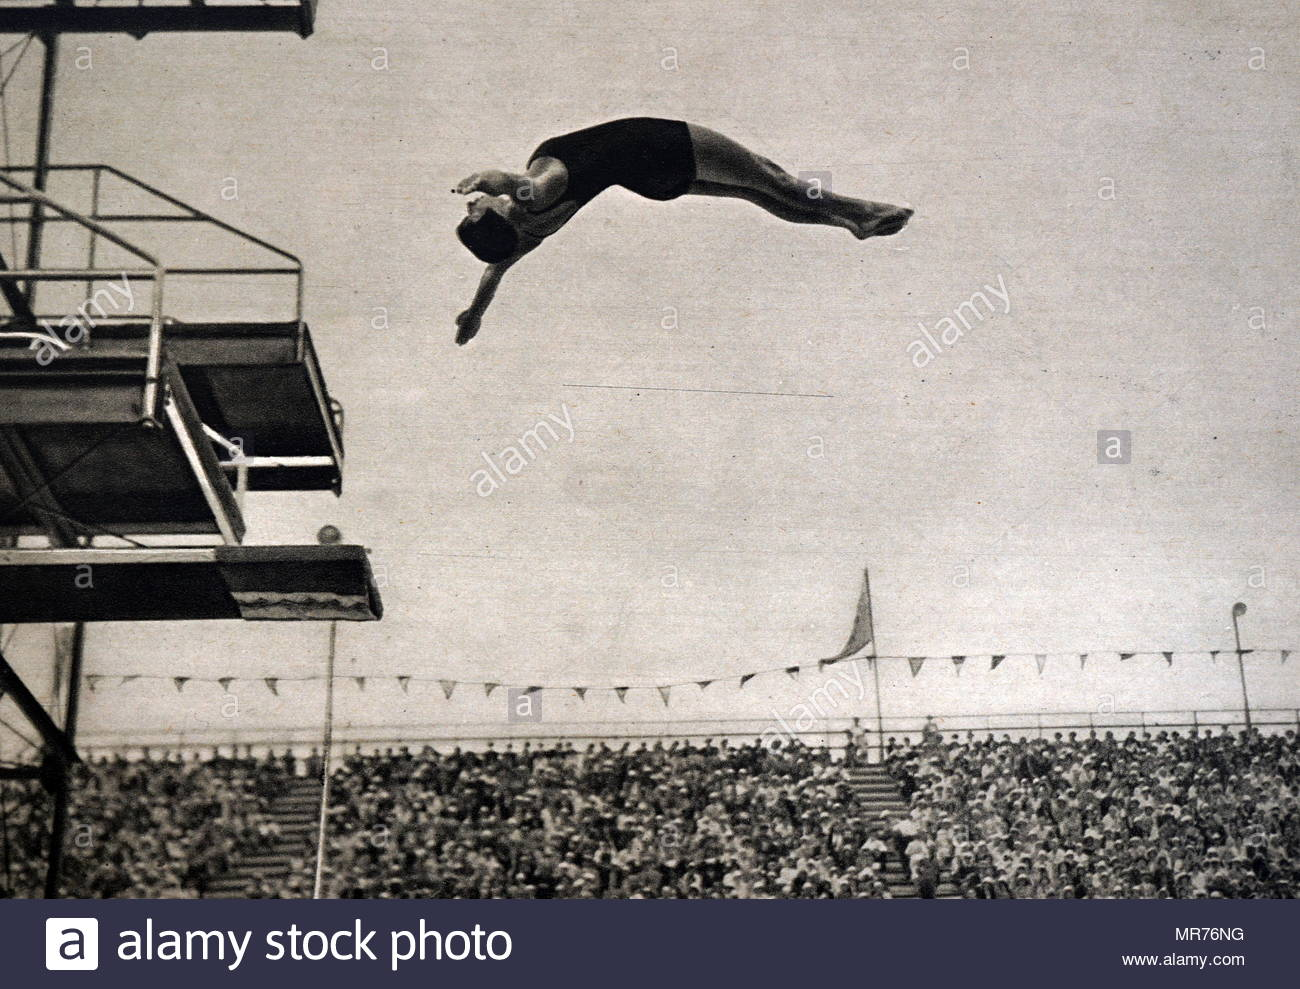 Photograph of Olga Jordan (1913 -  2000) a German diver at the 1932 Olympic games. - Stock Image